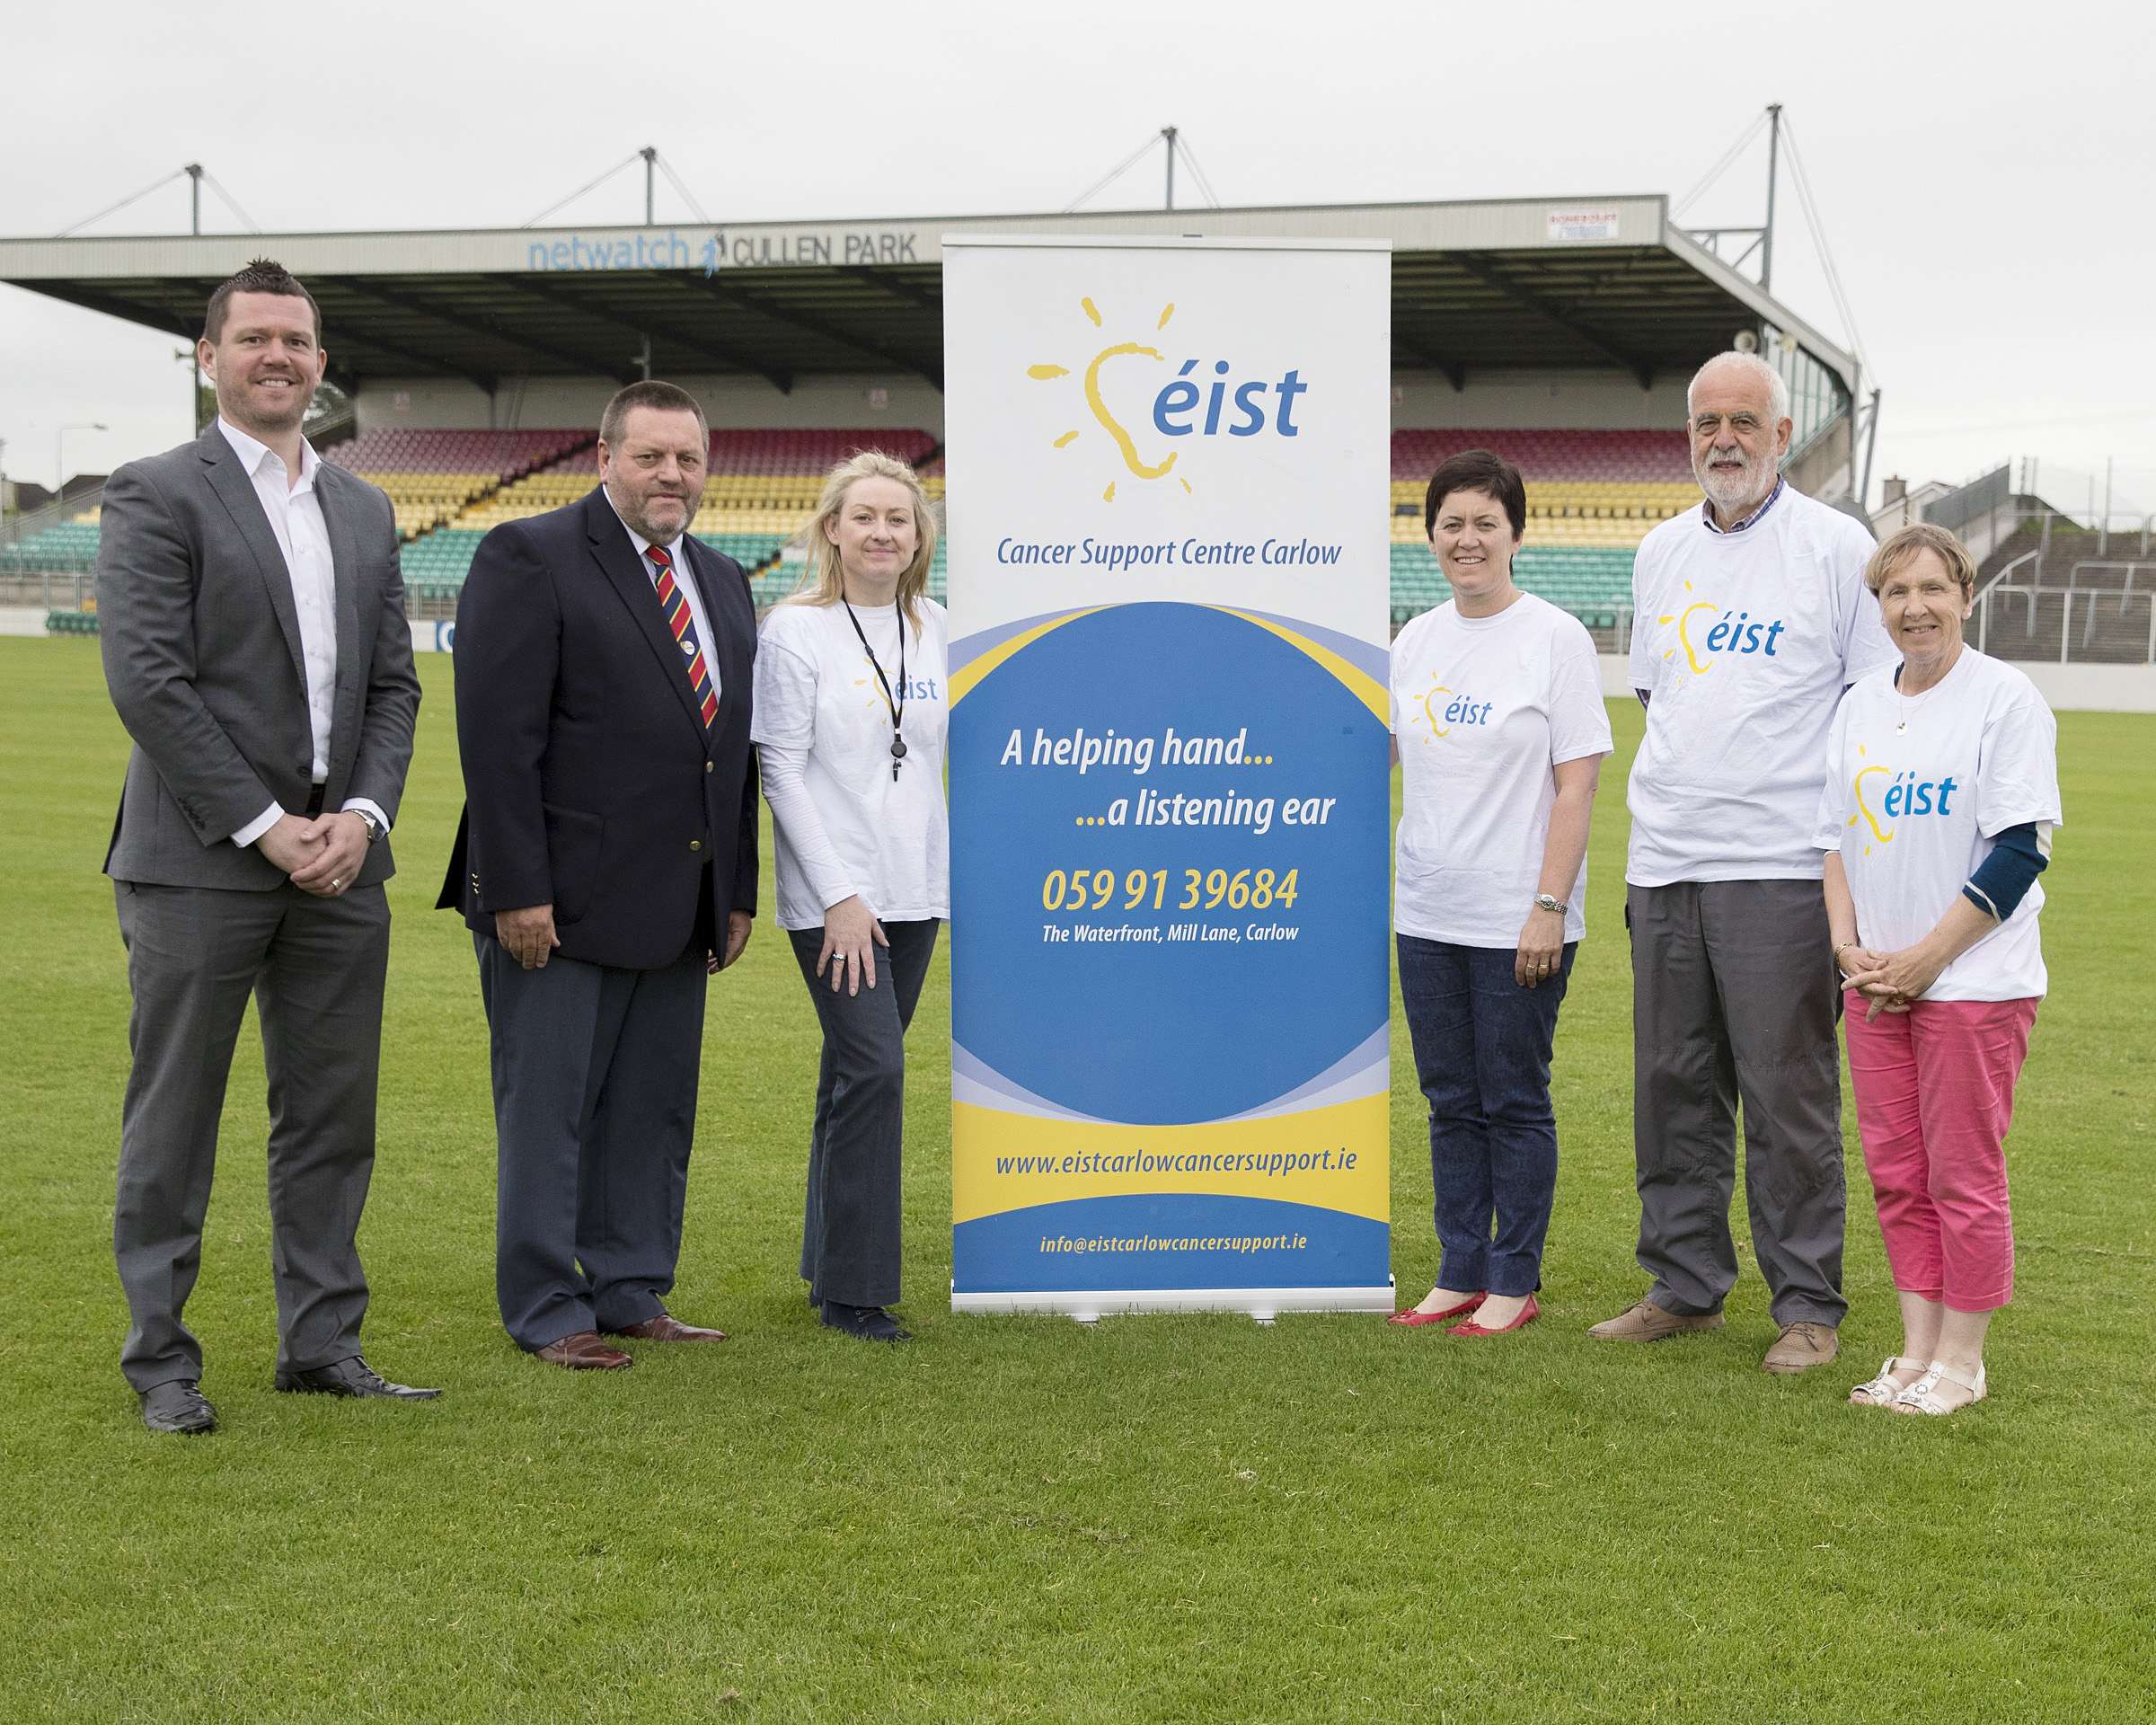 Ronan Dempsey Operations Manager, Sean Campion Chairman Carlow County Board, Valerie Byrne Service Manager, Margaret Curran Chairperson Board of Management , Dick Murray and Mary Smyth. Photo: Thomas Nolan Photography.